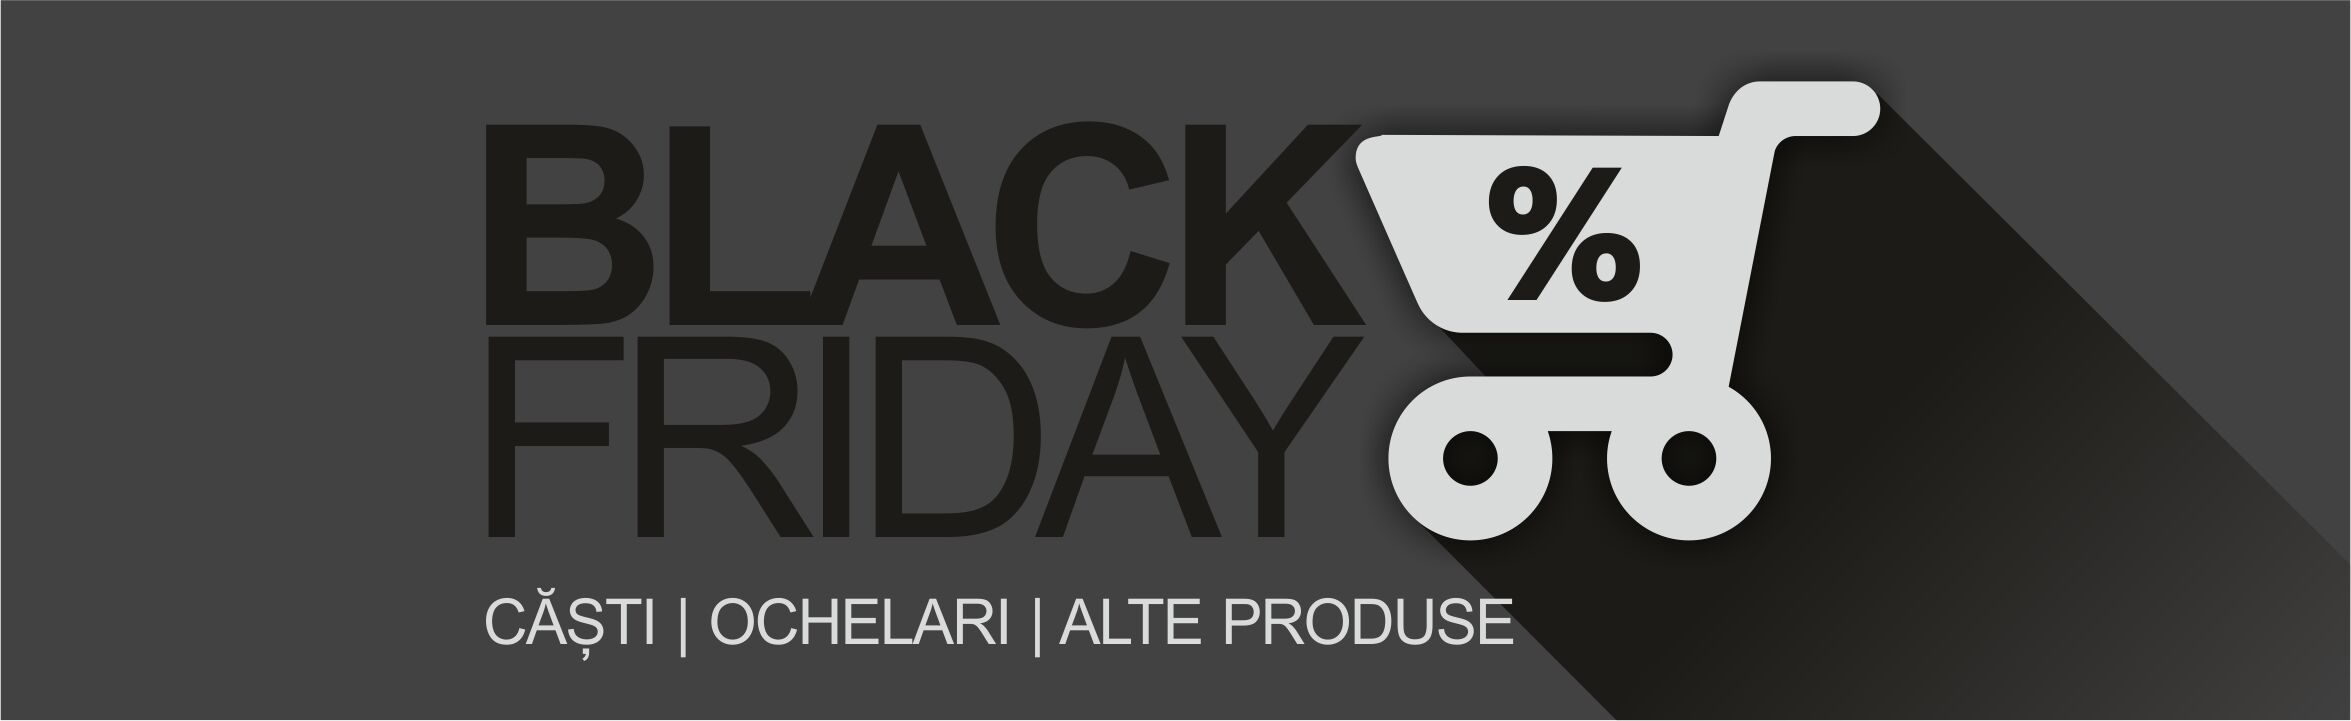 BlackFriday_RO